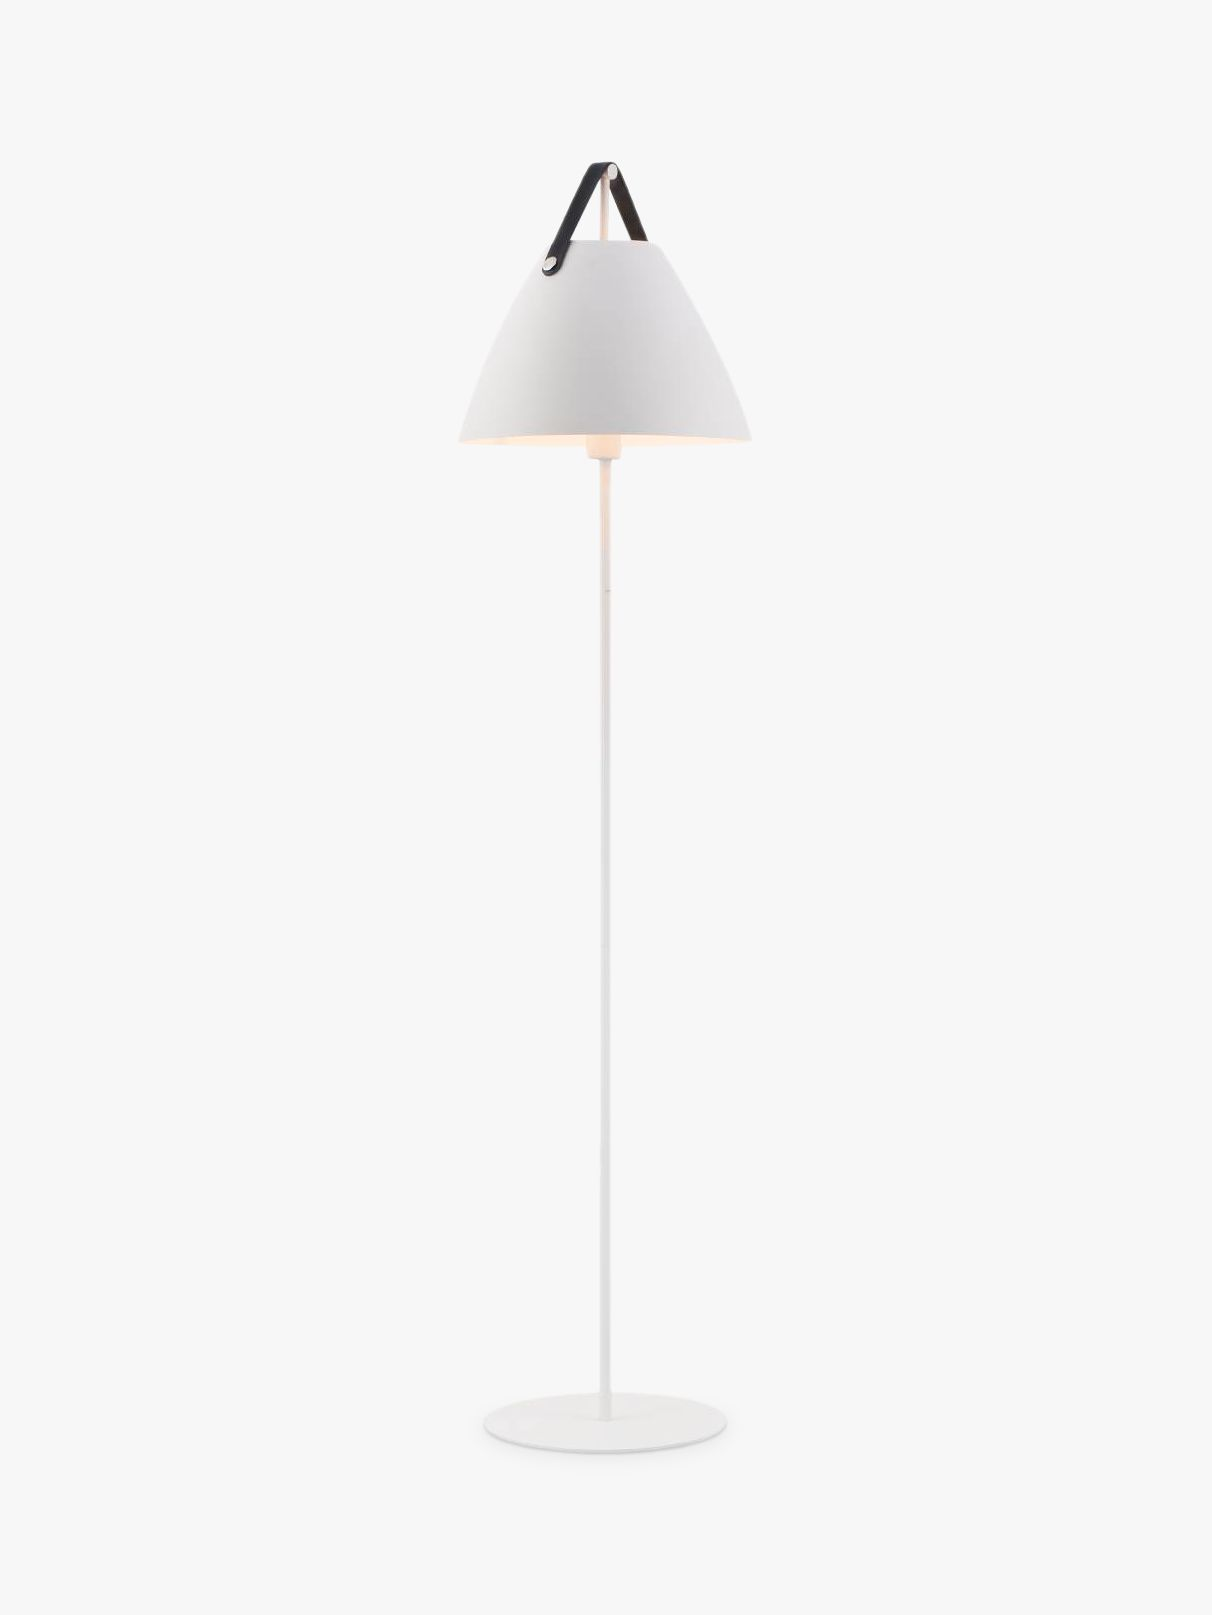 Nordlux Nordlux Design For The People Strap Floor Lamp